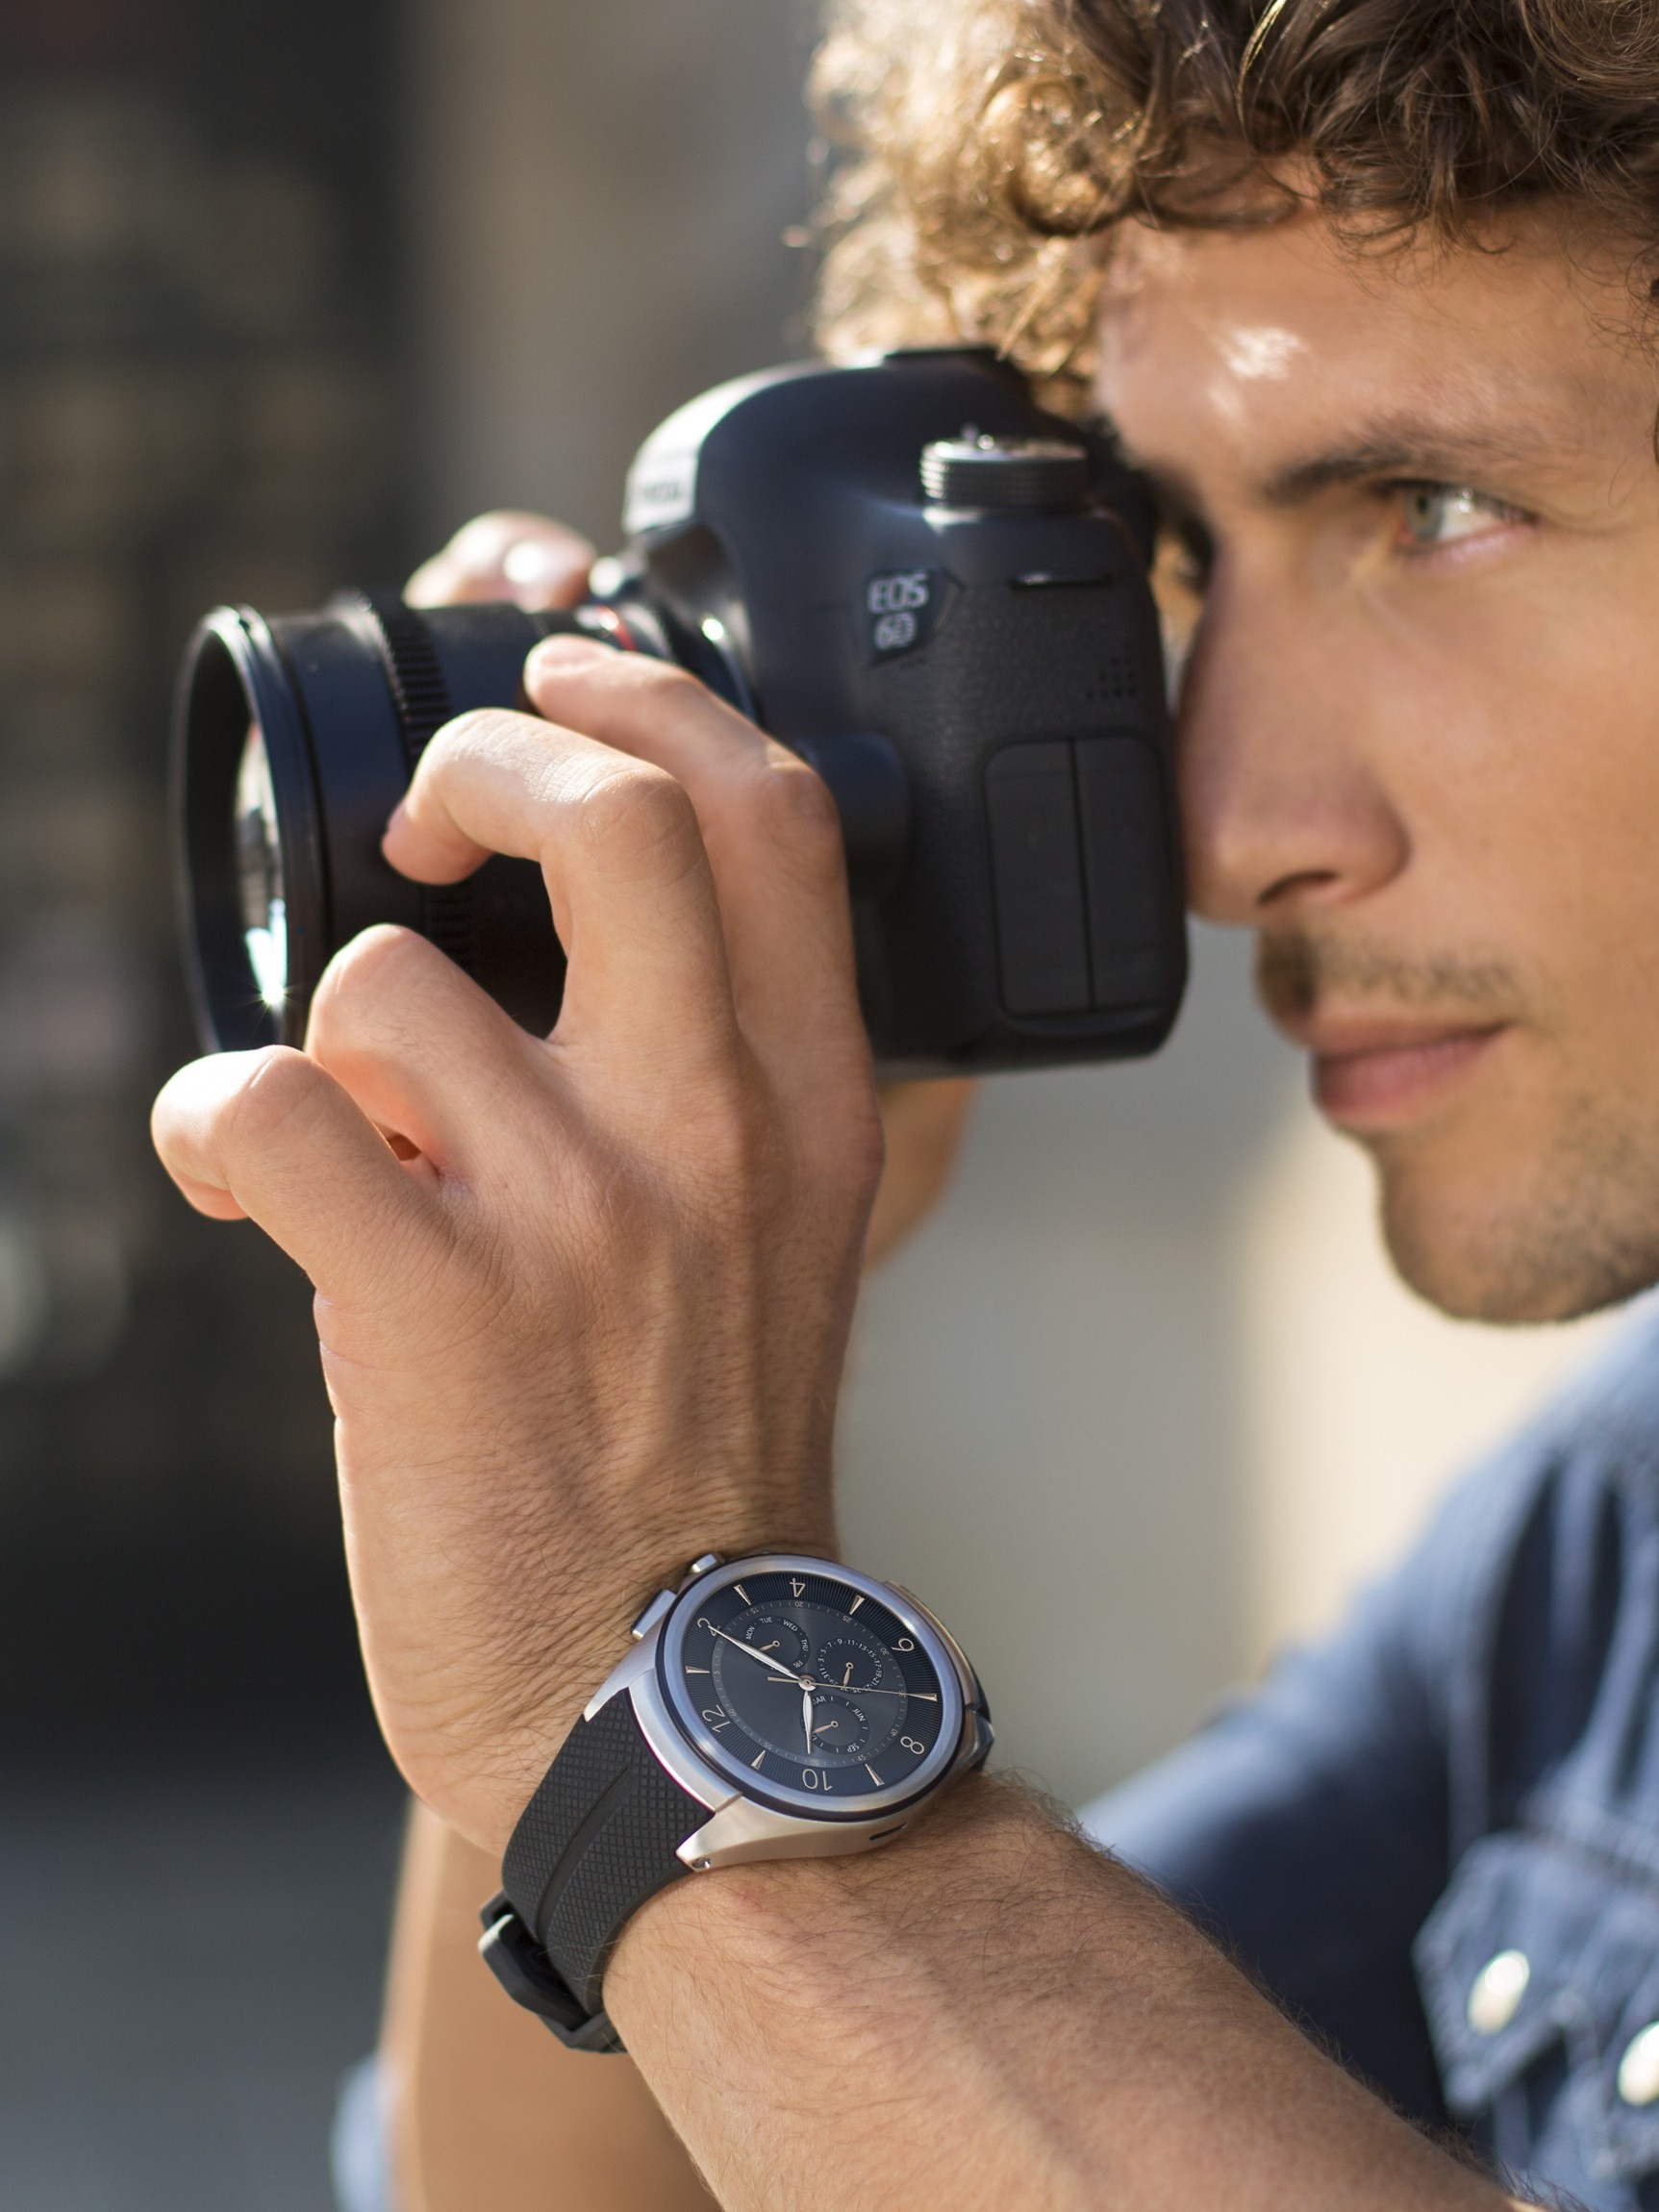 A man with the LG Watch Urbane 2nd Edition on his wrist takes a photo with a DSLR camera